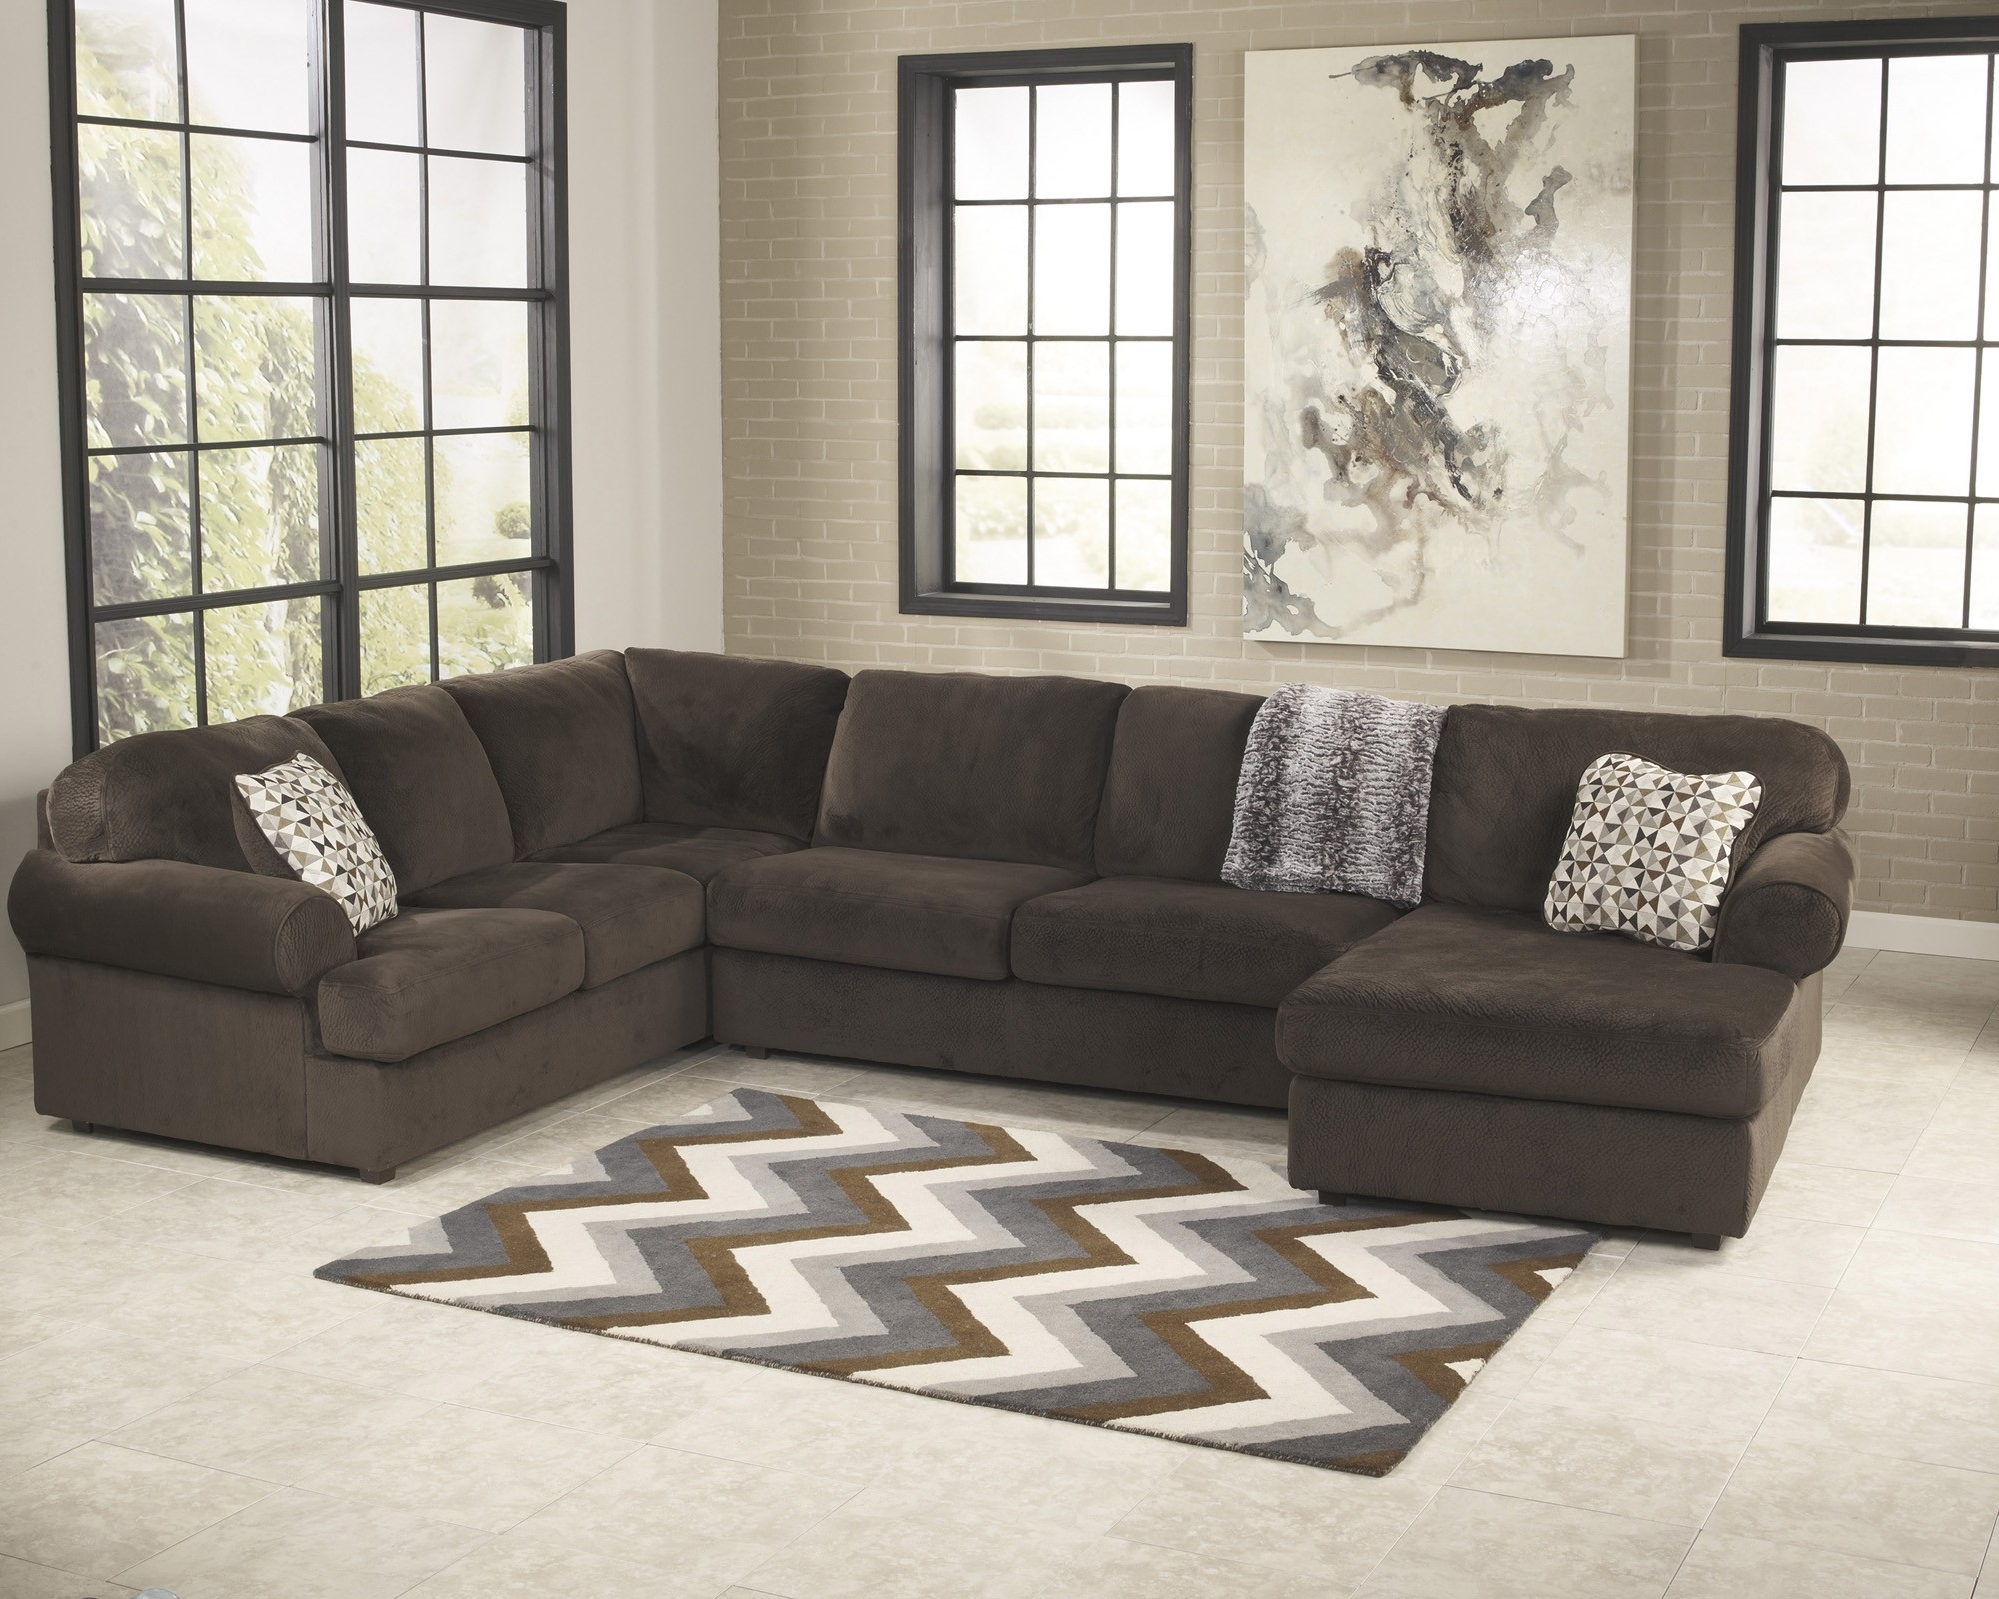 Most Recently Released Chairs : Jessa Place Chocolate Piece Sectional Sofa For Sofas Sale Regarding Sectional Sofas In Greenville Sc (View 7 of 15)